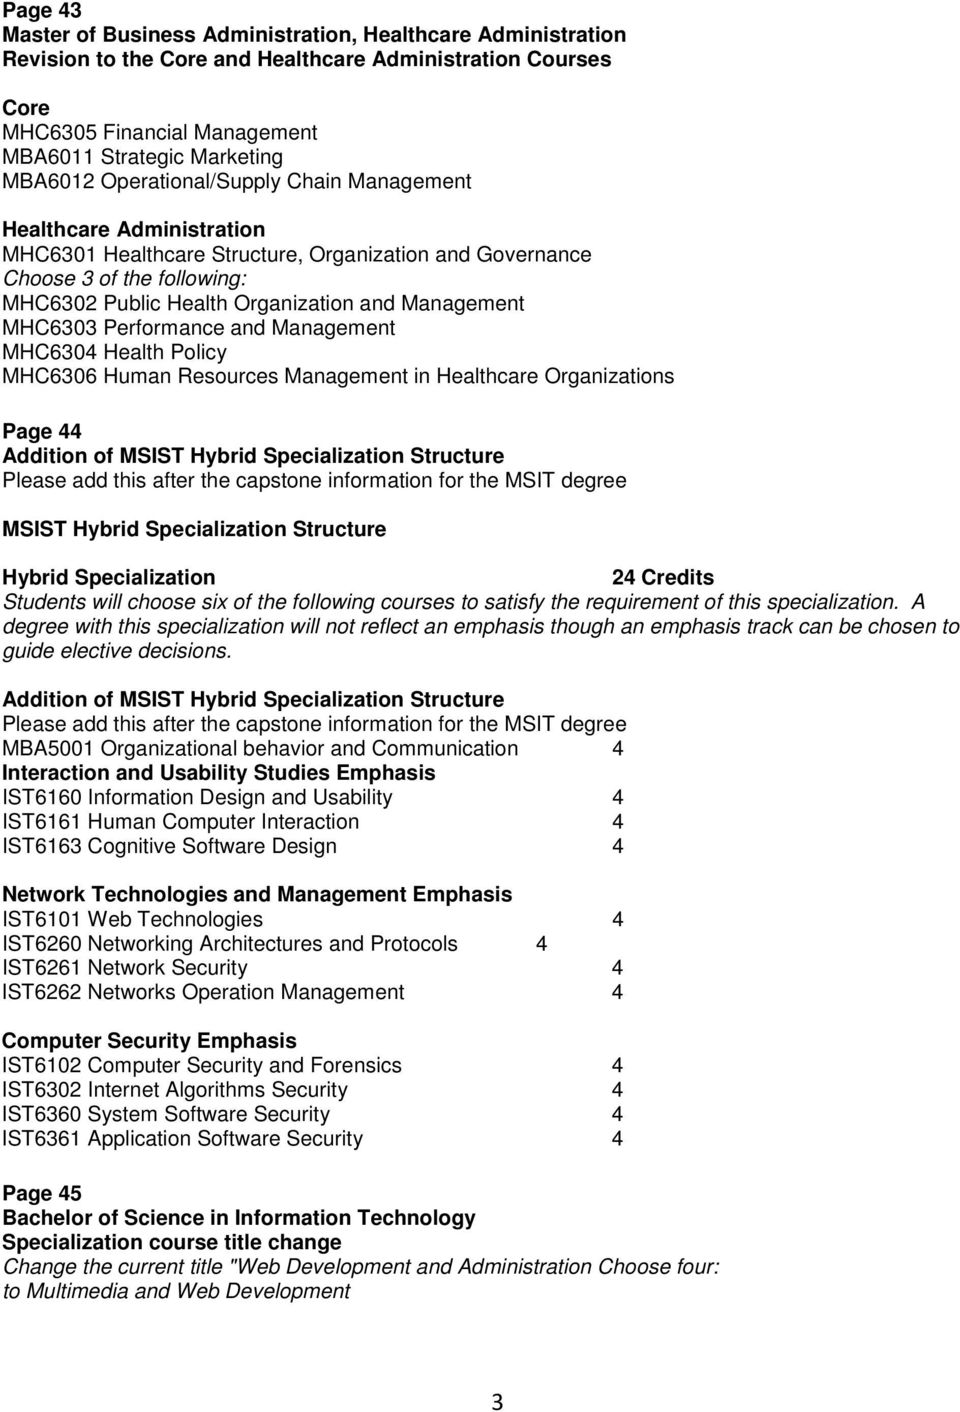 MHC6303 Performance and Management MHC6304 Health Policy MHC6306 Human Resources Management in Healthcare Organizations Page 44 Addition of MSIST Hybrid Specialization Structure Please add this after